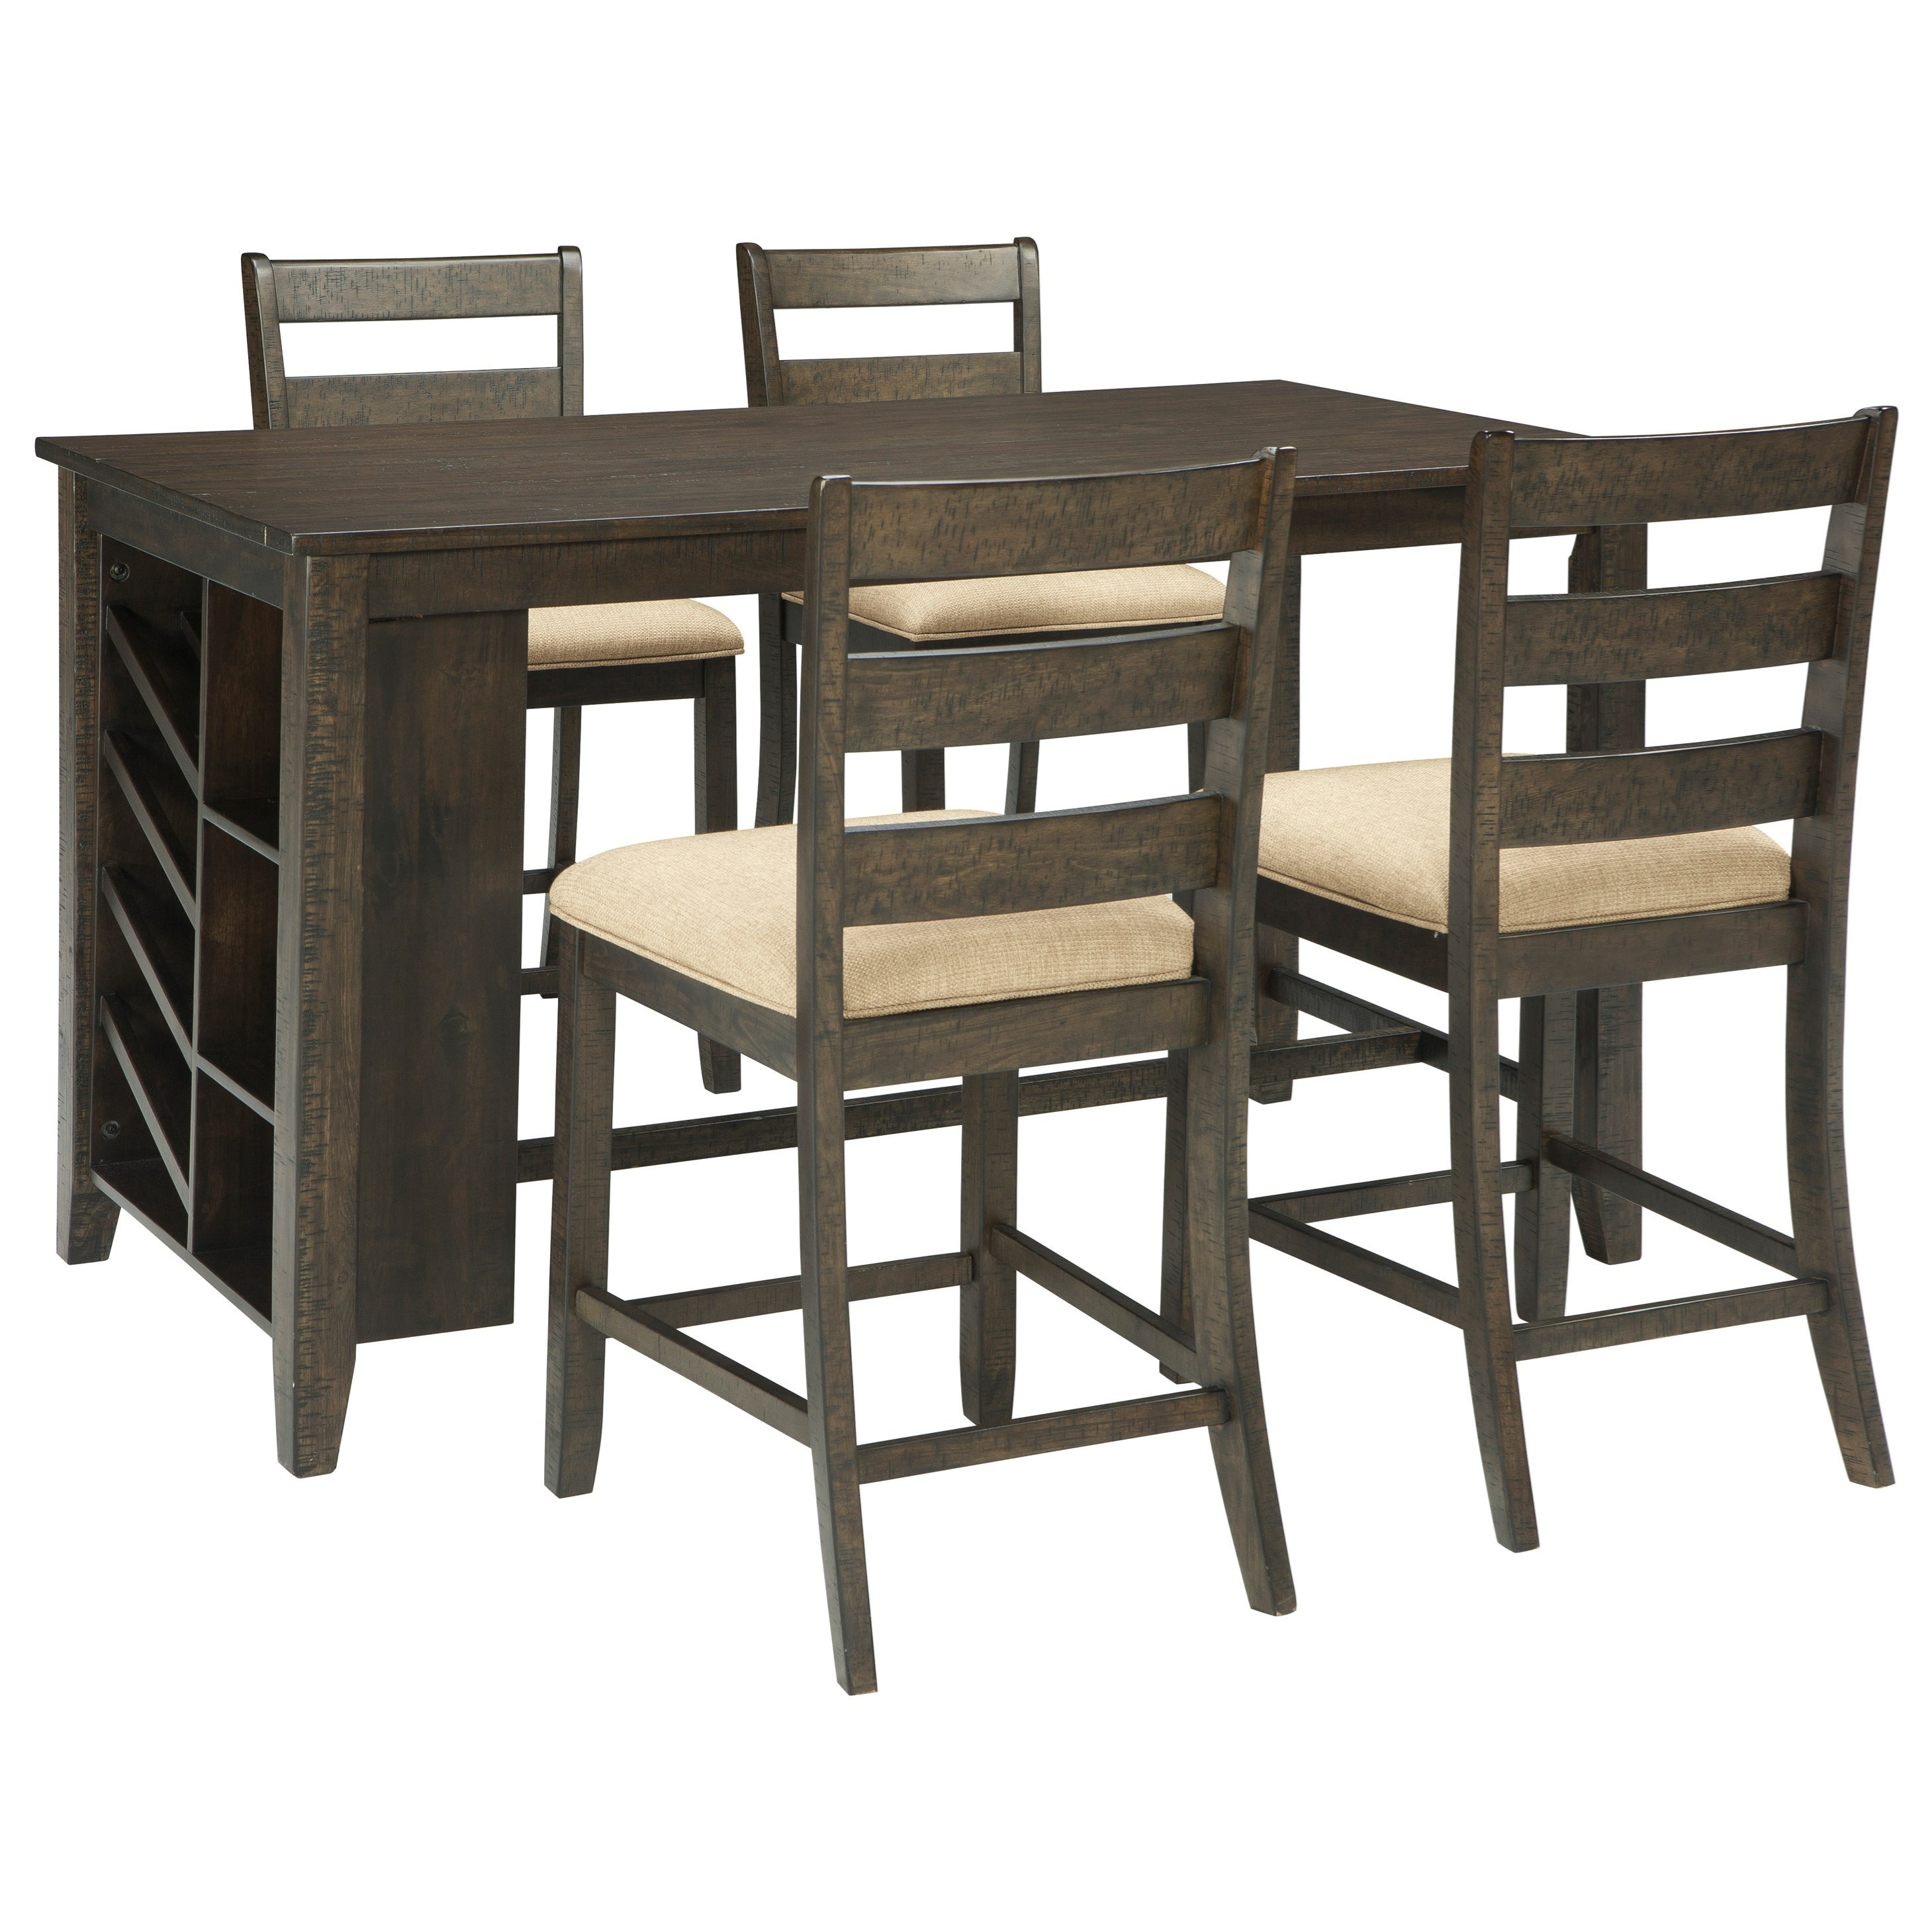 Signature design by ashley rokane 5 piece rectangular counter table set item number